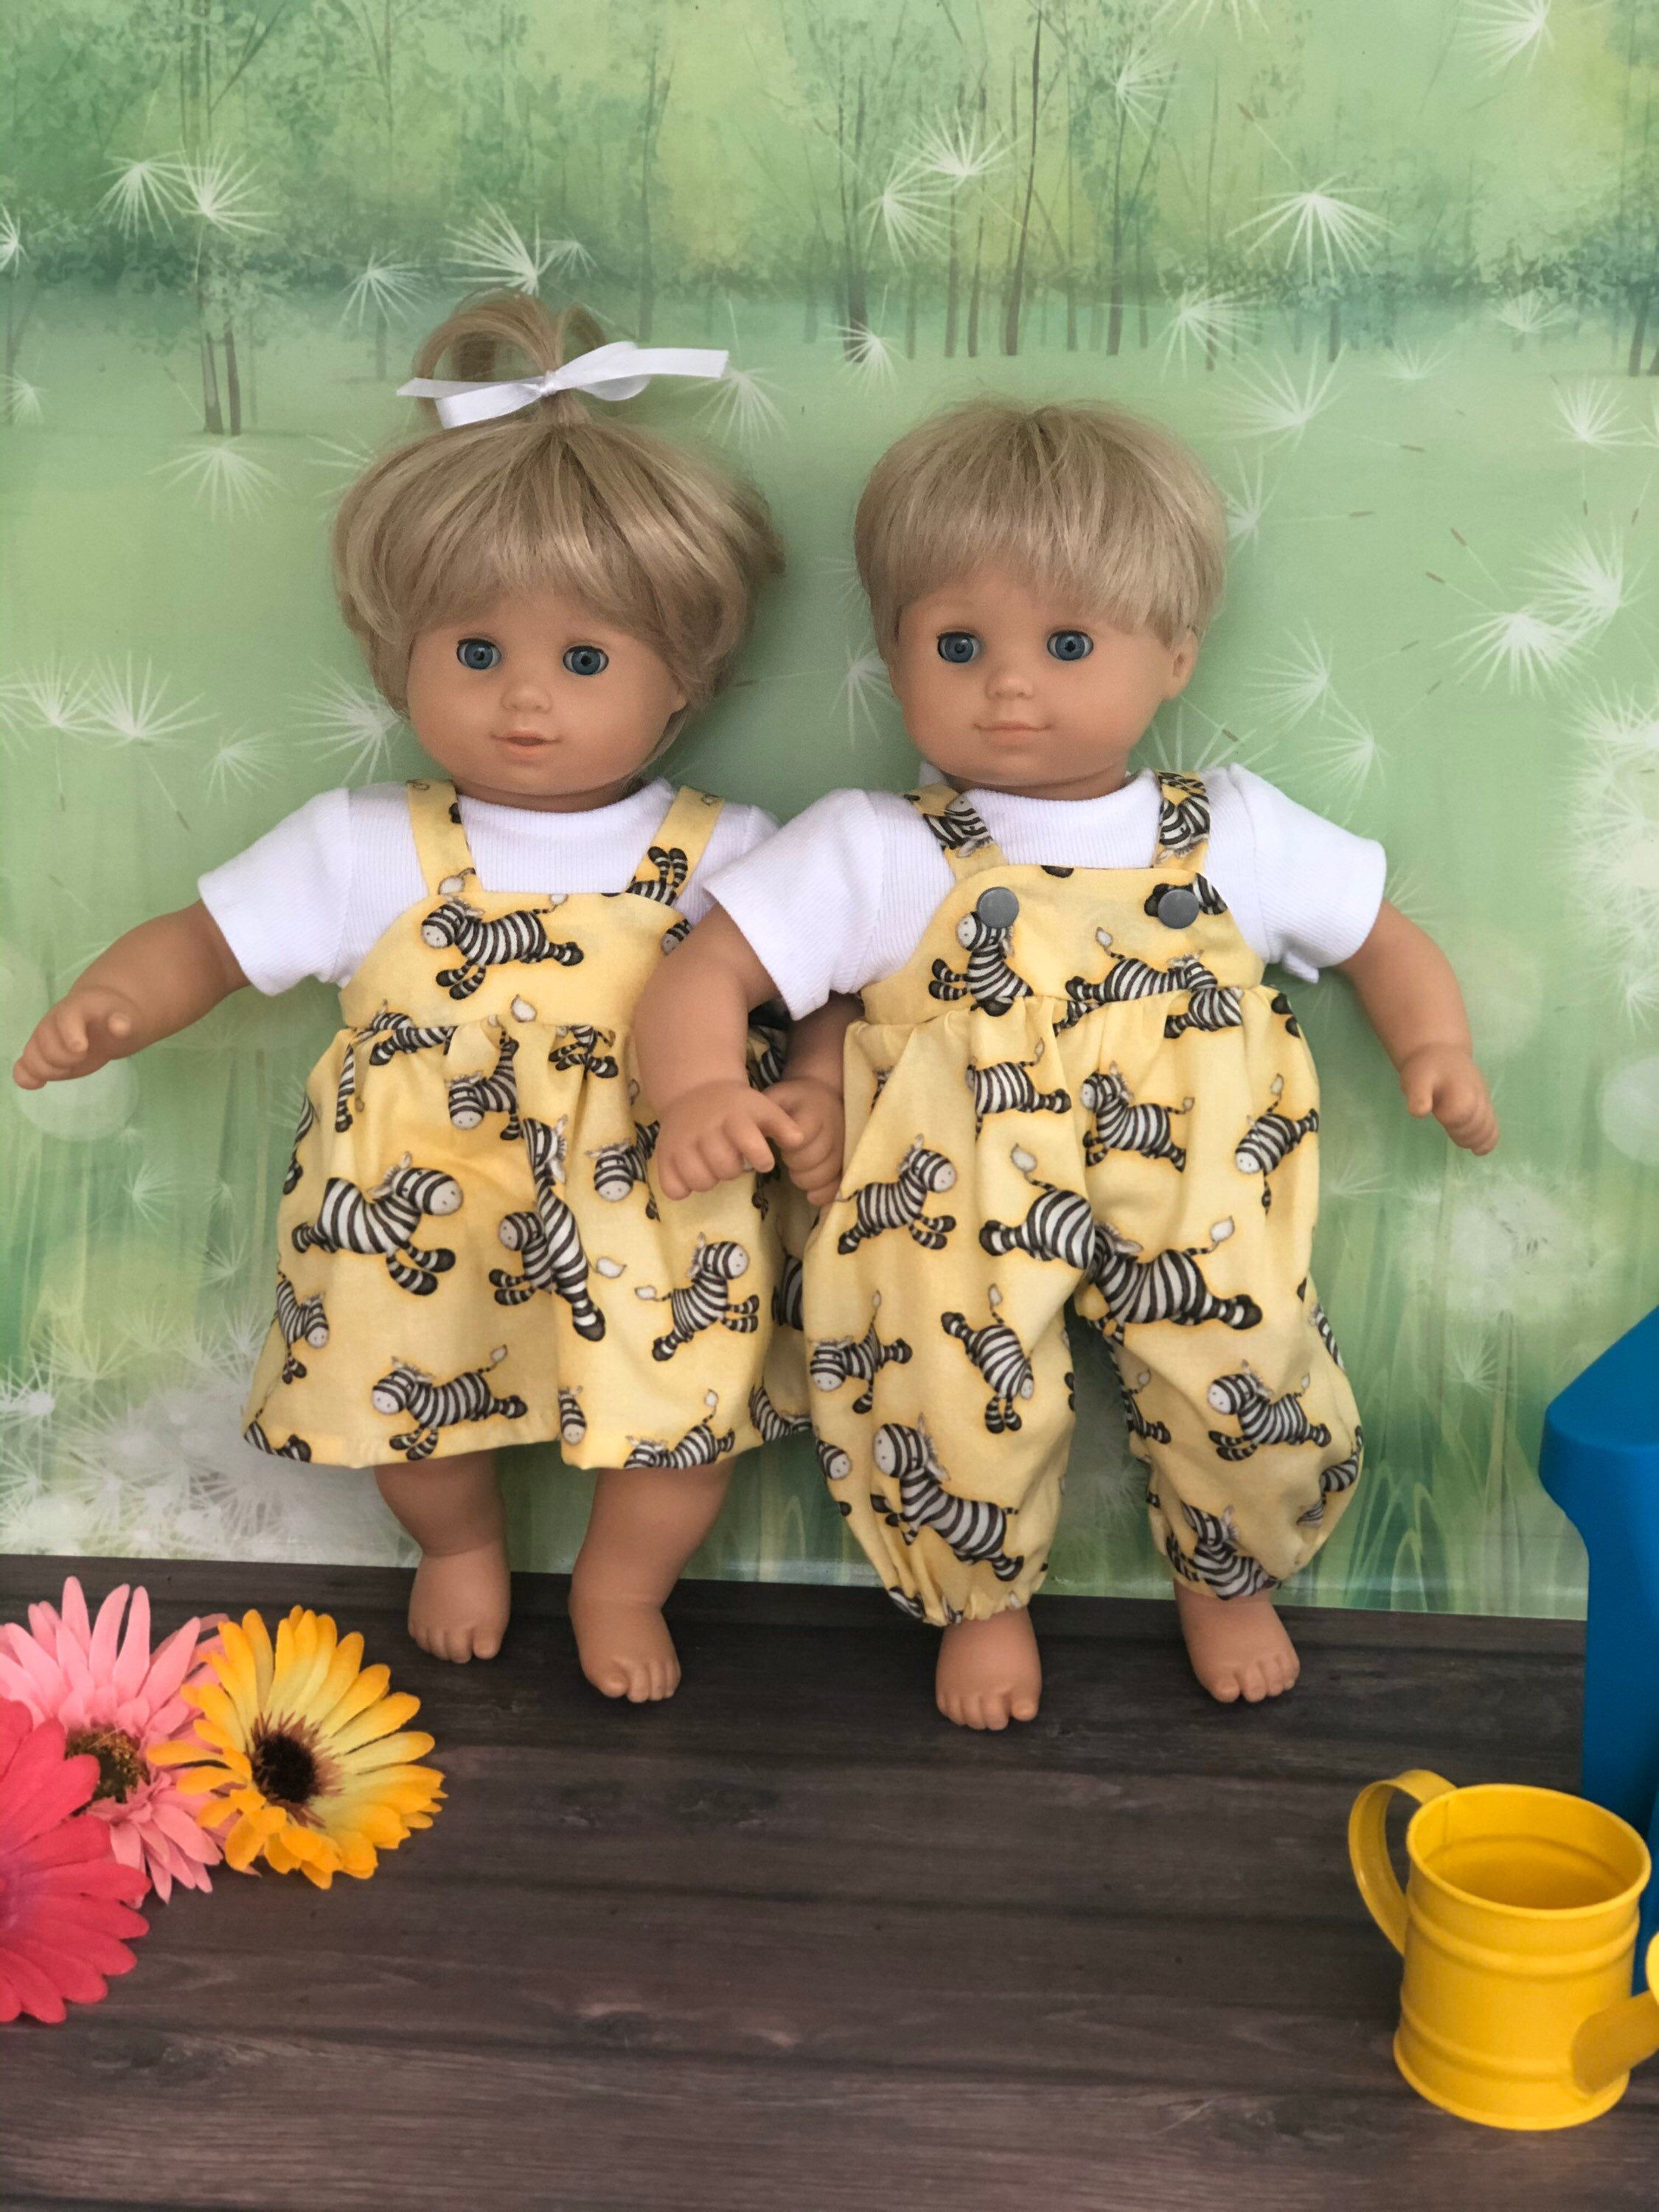 15 Twin Doll Clothes Boy Girl Doll Outfits Etsy In 2020 Boy Outfits Twin Dolls Girl Dolls